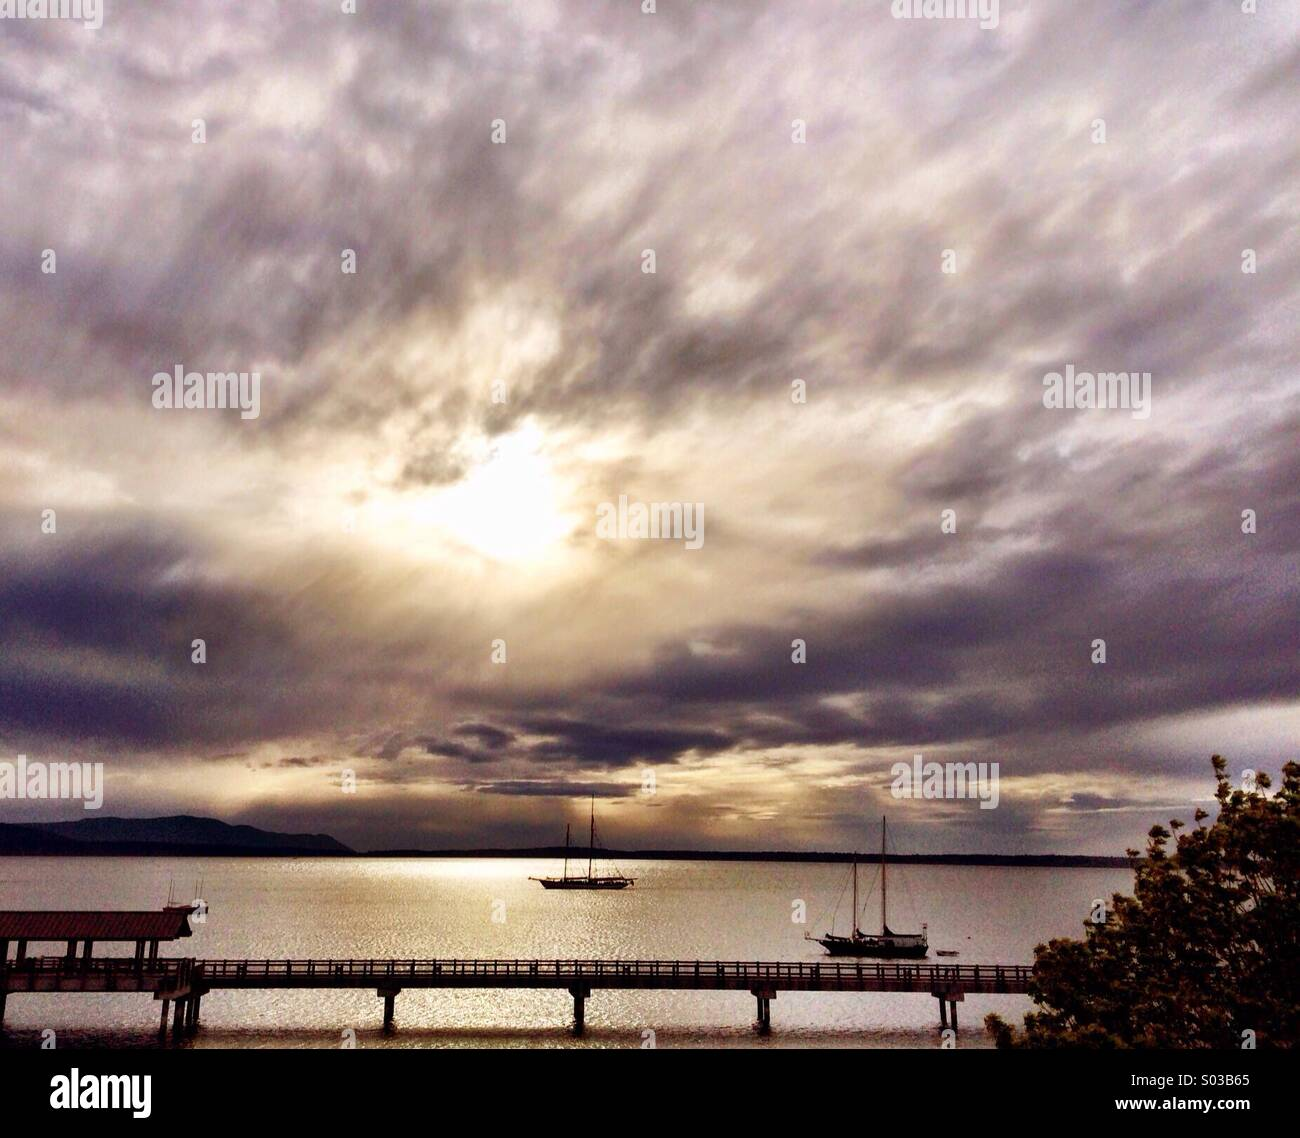 Sunset over sound - Stock Image